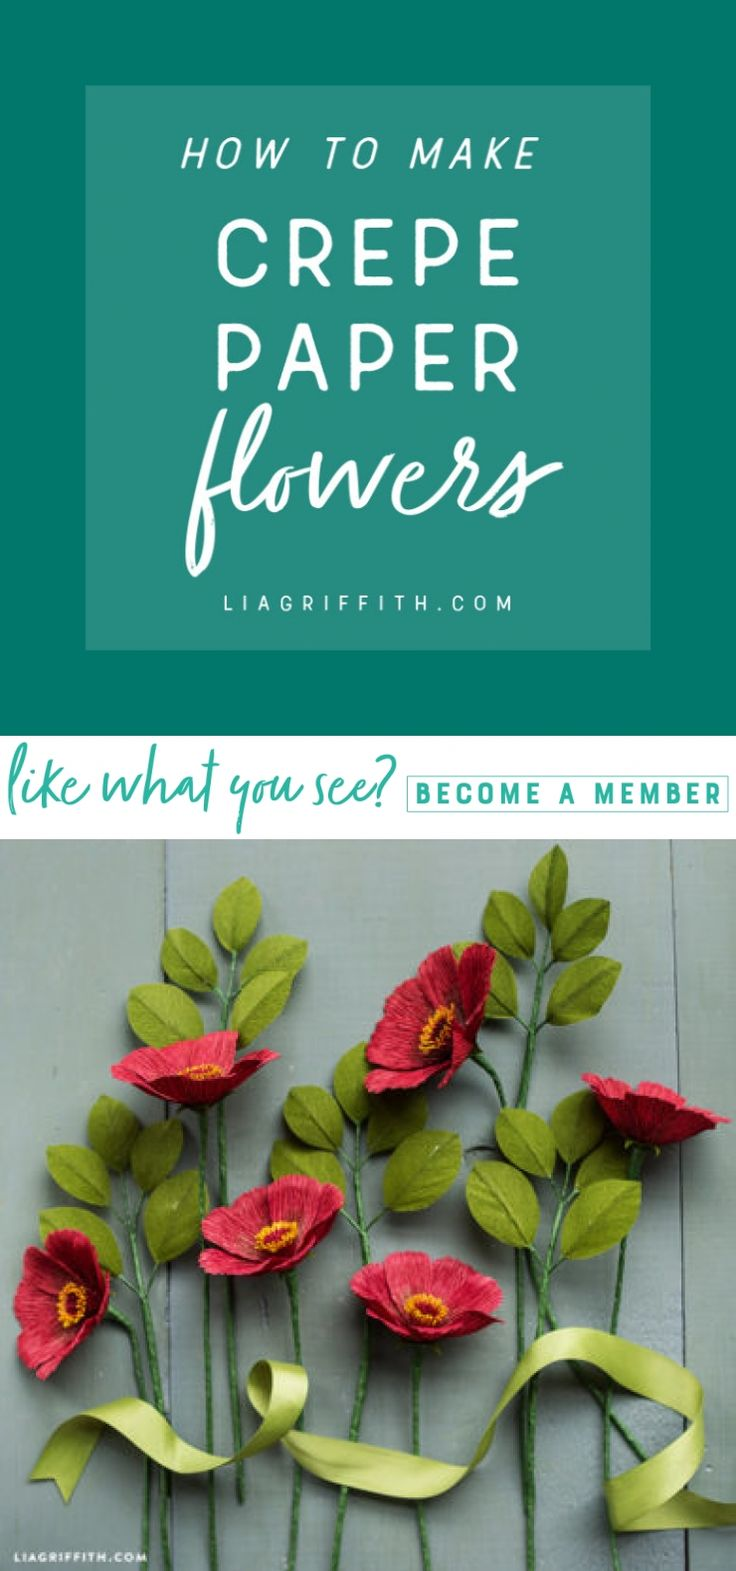 How to Make Crepe Paper Flowers  Eager to make your first crepe paper creation? We'll teach you the essentials you need to succeed in making beautiful and realistic blooms that last.  https://liagriffith.com/how-to-make-crepe-paper-flowers/ * * * #flower #flowers #crepepaper #crepepaperrevival #crepepaperflowers #paper #paperart #paperartist #papercut #paperlove #diy #diycraft #diycrafts #diyproject #diyprojects #craft #tutorial #tips #tipsandtricks #madewithlia